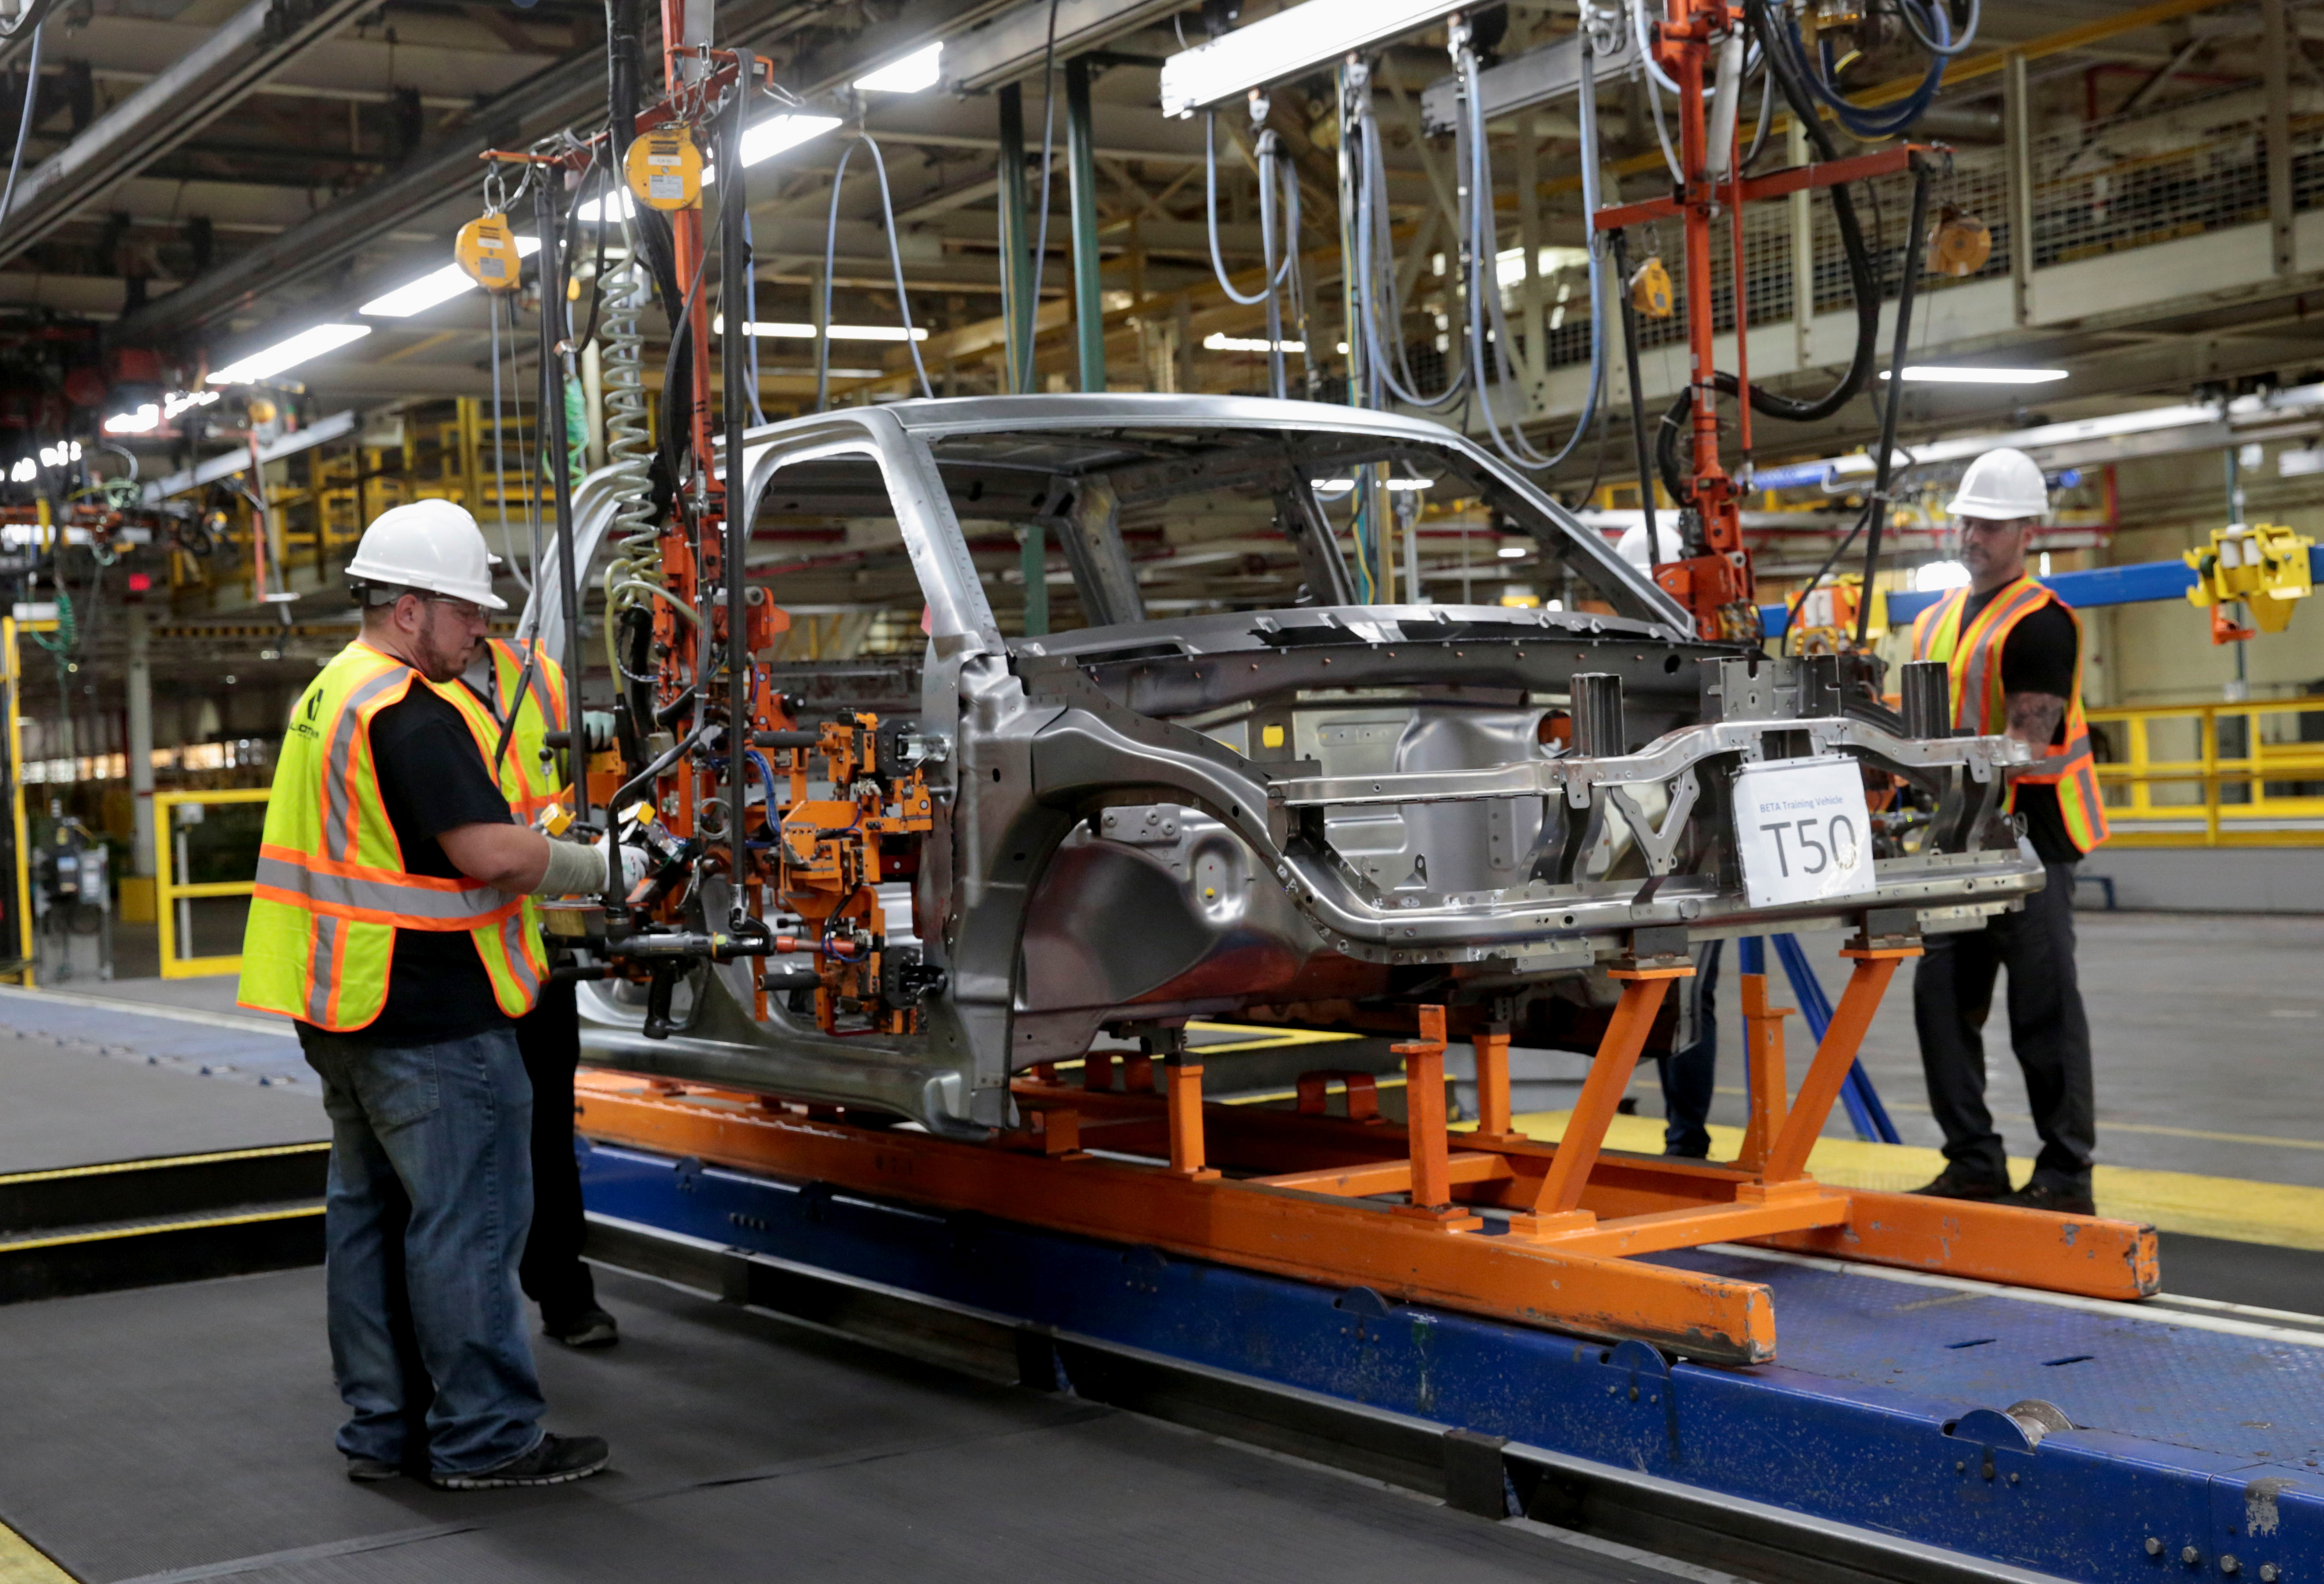 Lordstown Motors associates work on a pre-production all electric pickup truck, the Endurance, at the Lordstown Assembly Plant in Lordstown, Ohio, U.S., June 21, 2021. REUTERS/Rebecca Cook